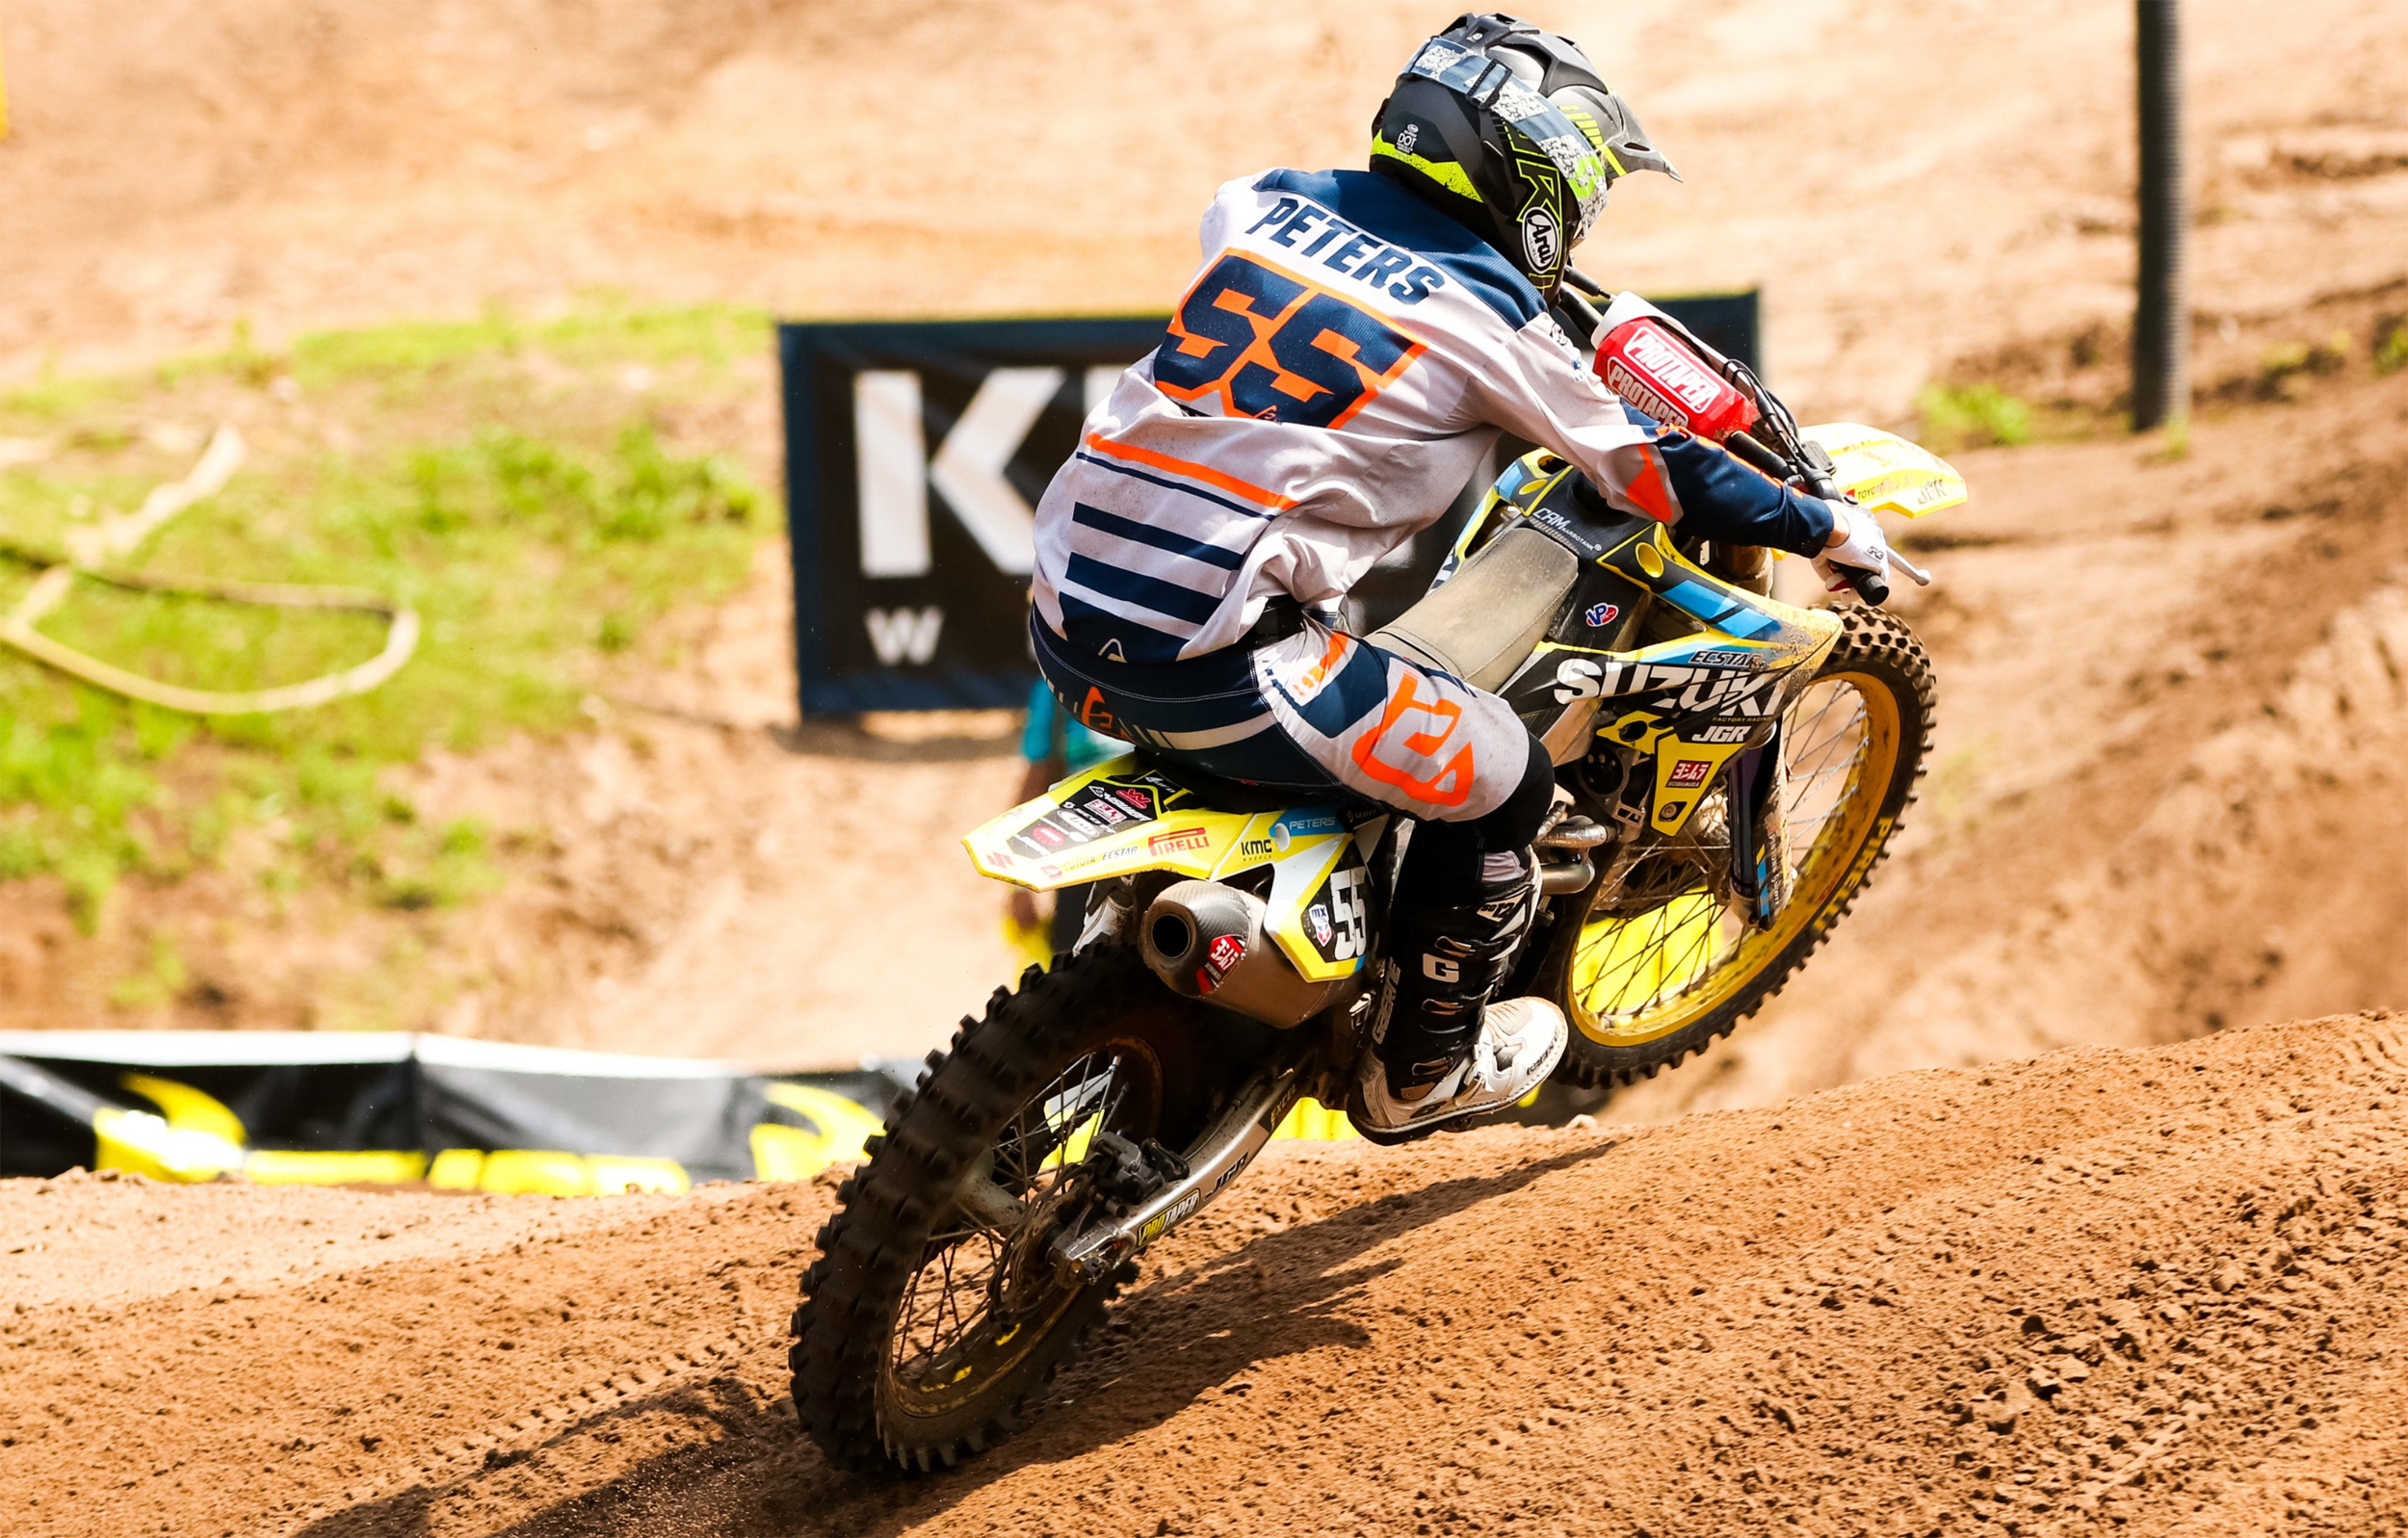 Kyle Peters (#55) fought hard on his RM-Z250 at Southwick National